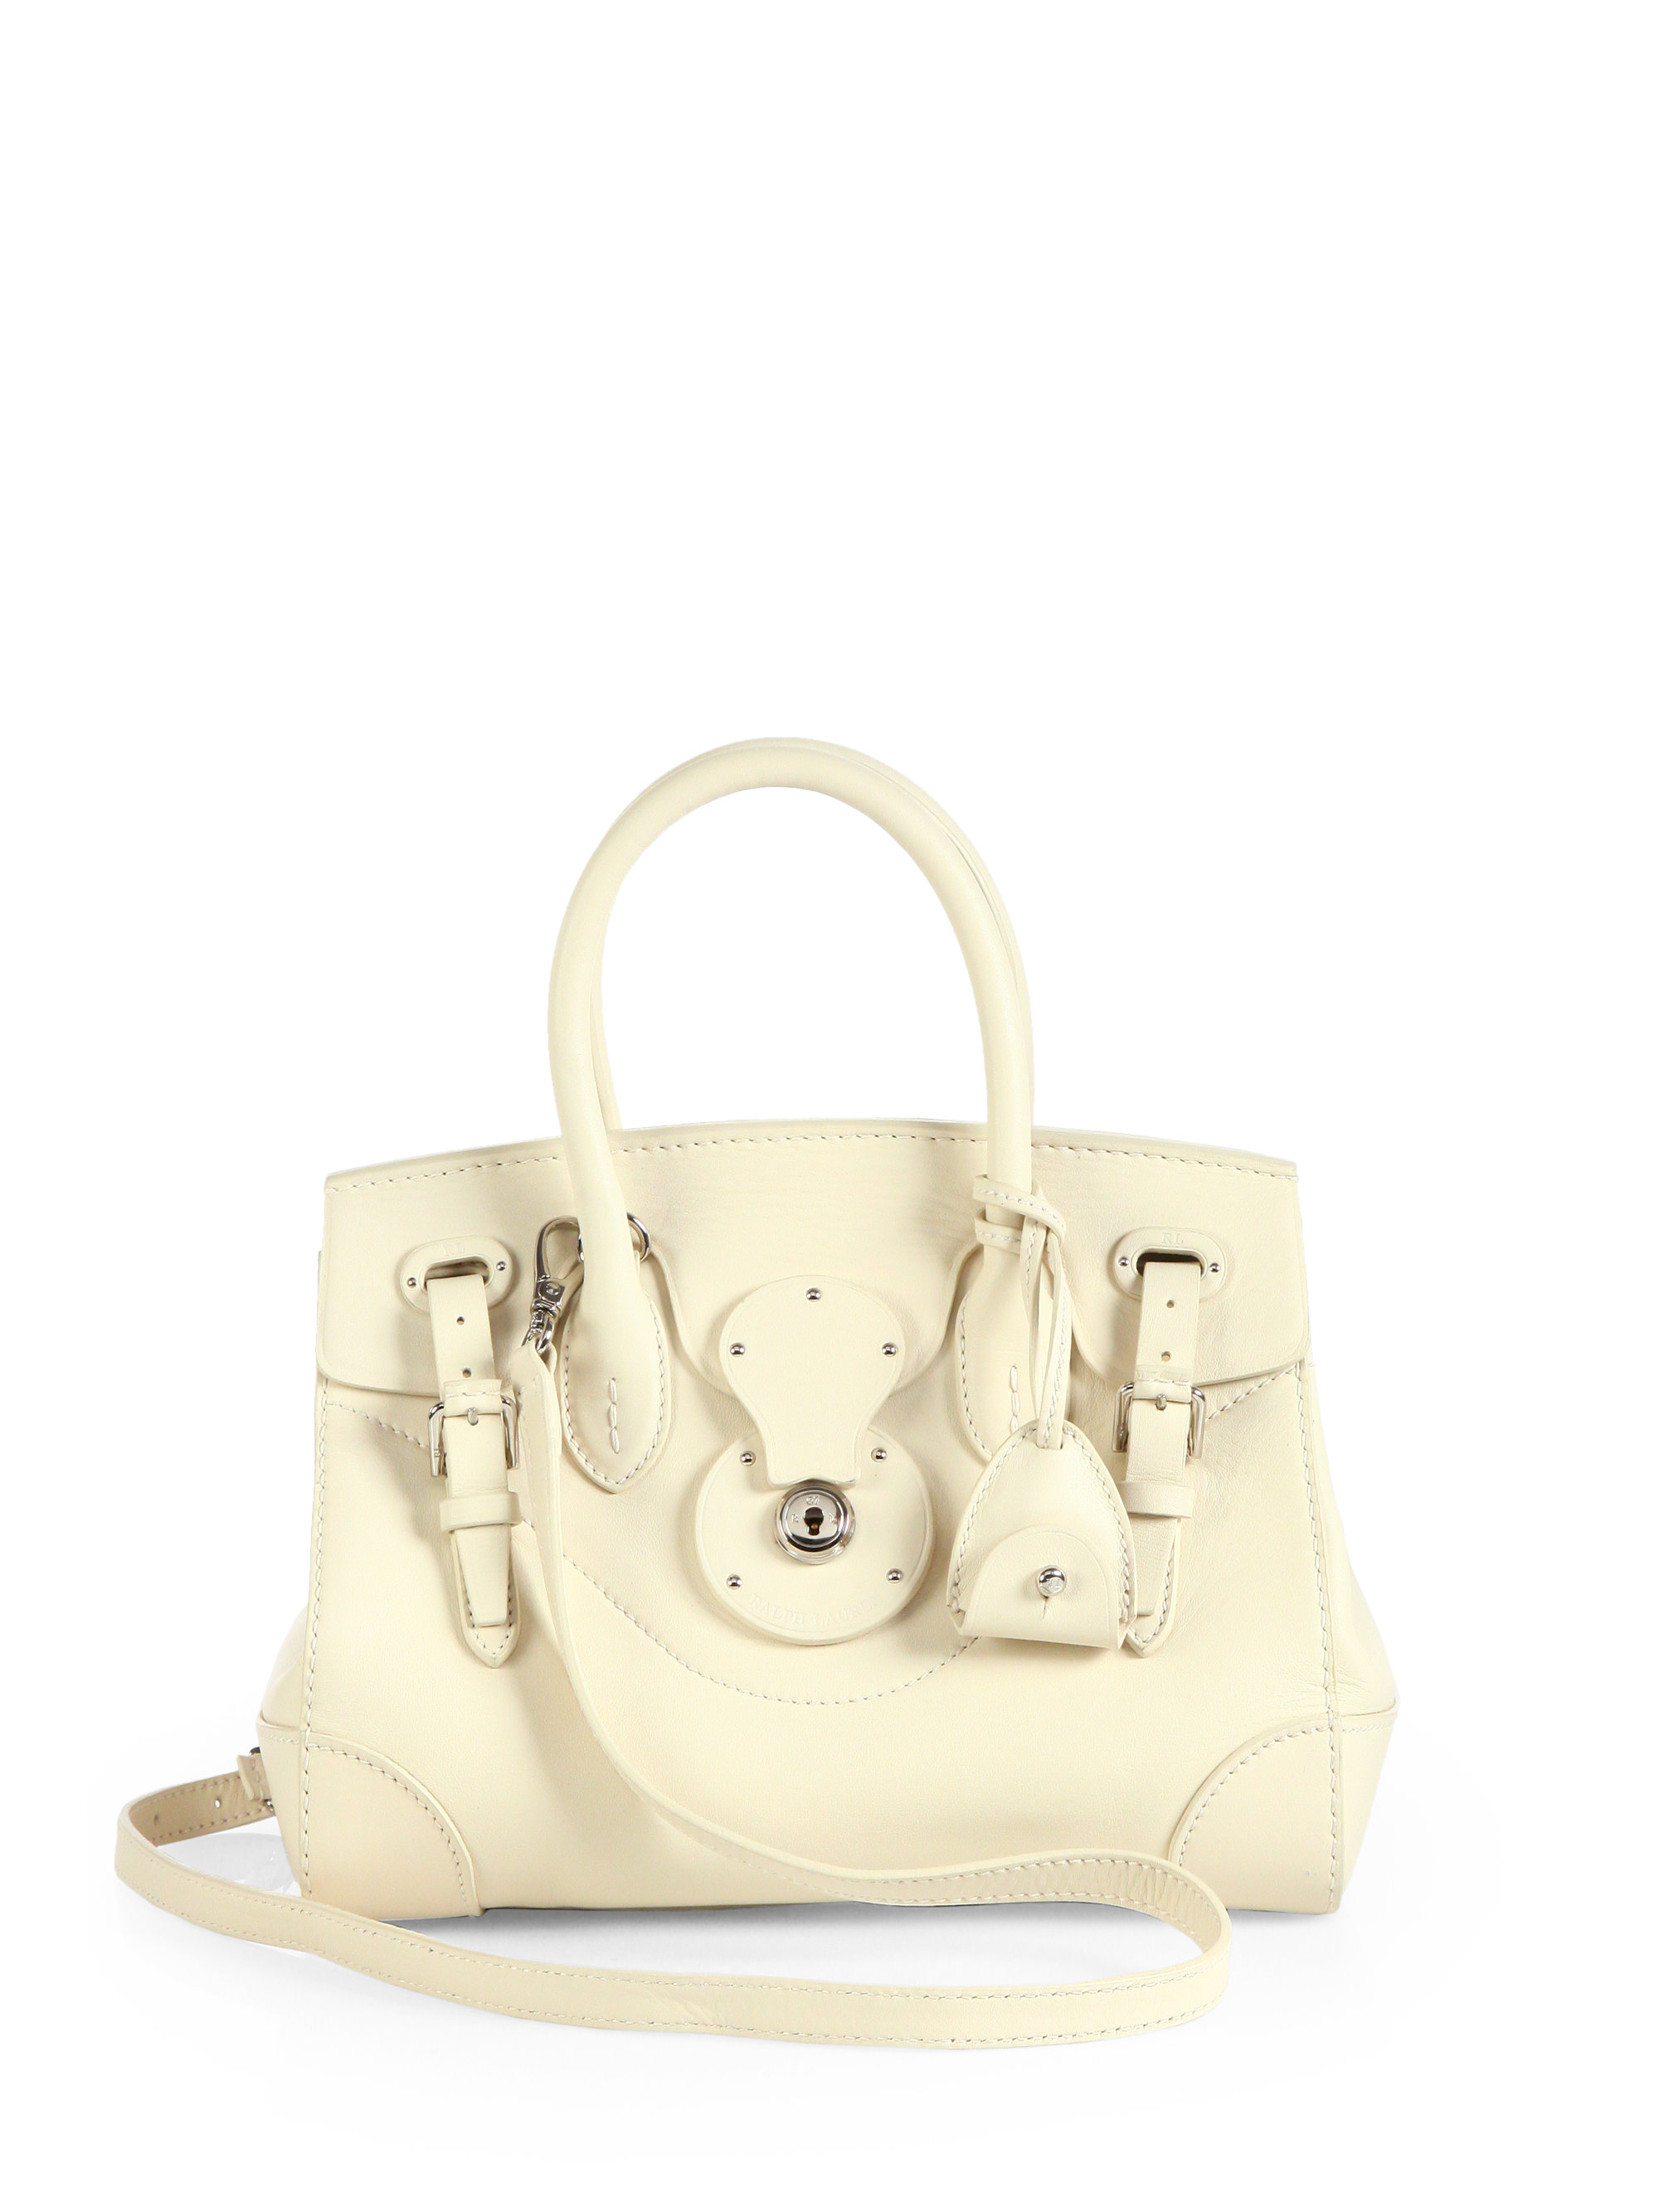 ac3866355290 Lyst - Ralph Lauren Soft Ricky 27 Small Satchel in Natural